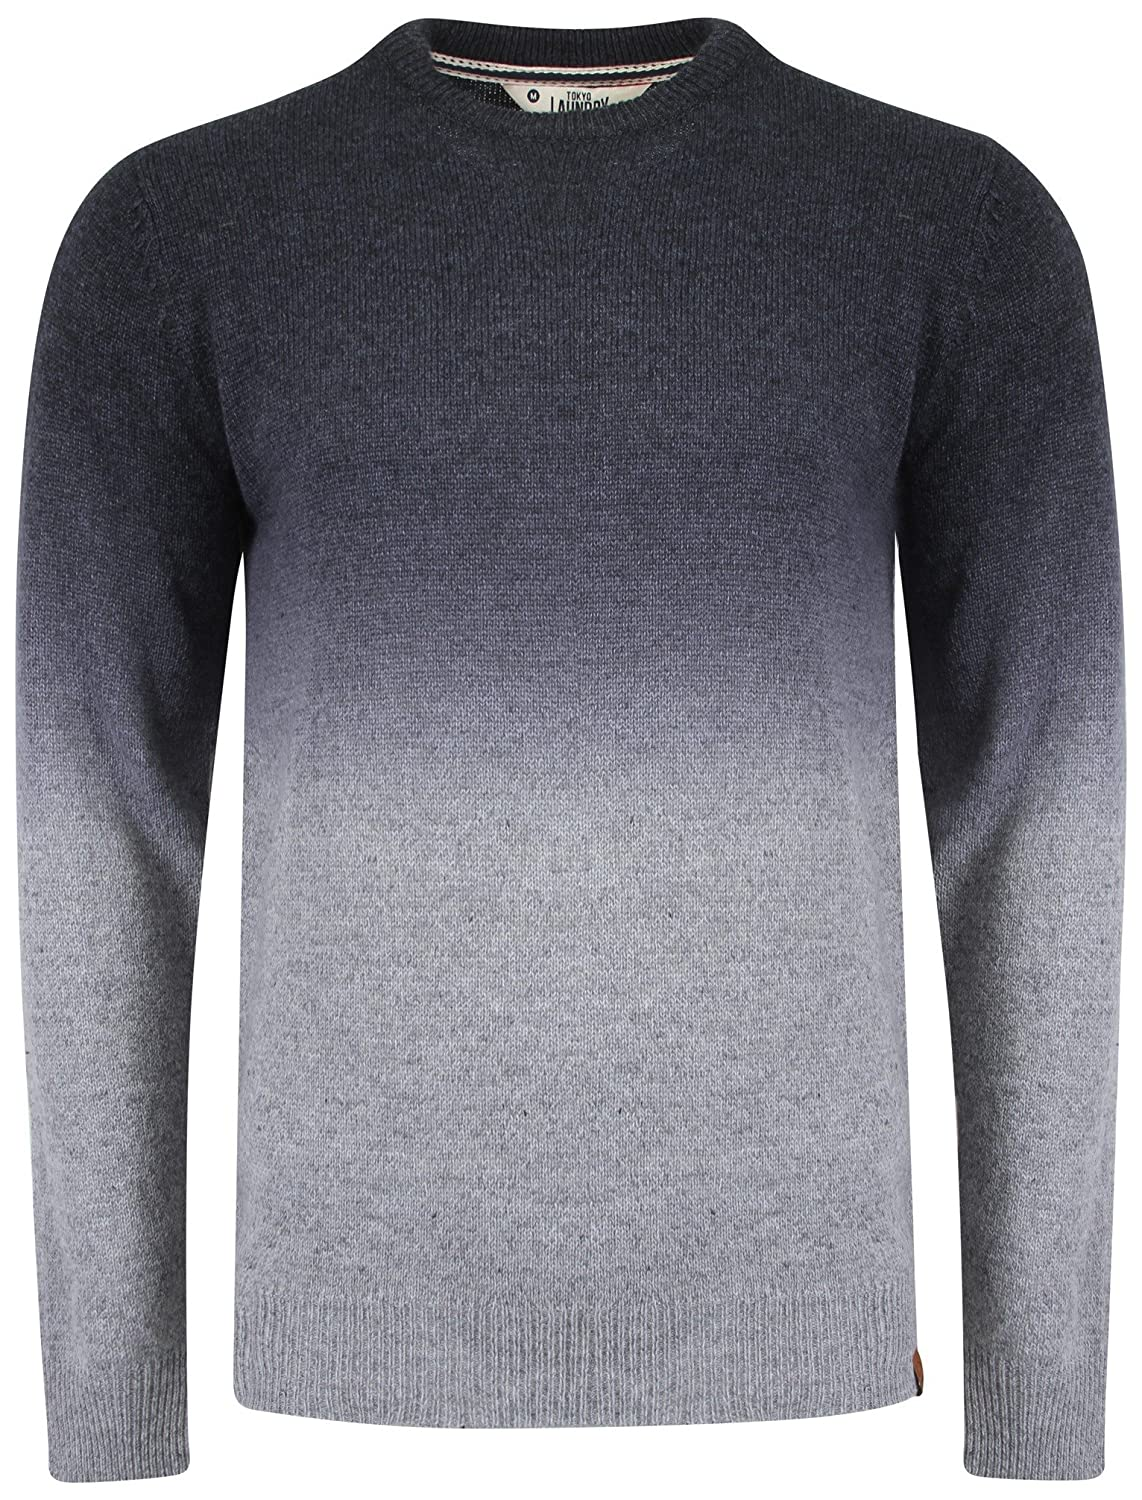 New Mens Tokyo Laundry Saw jumper Sizes S- XXL